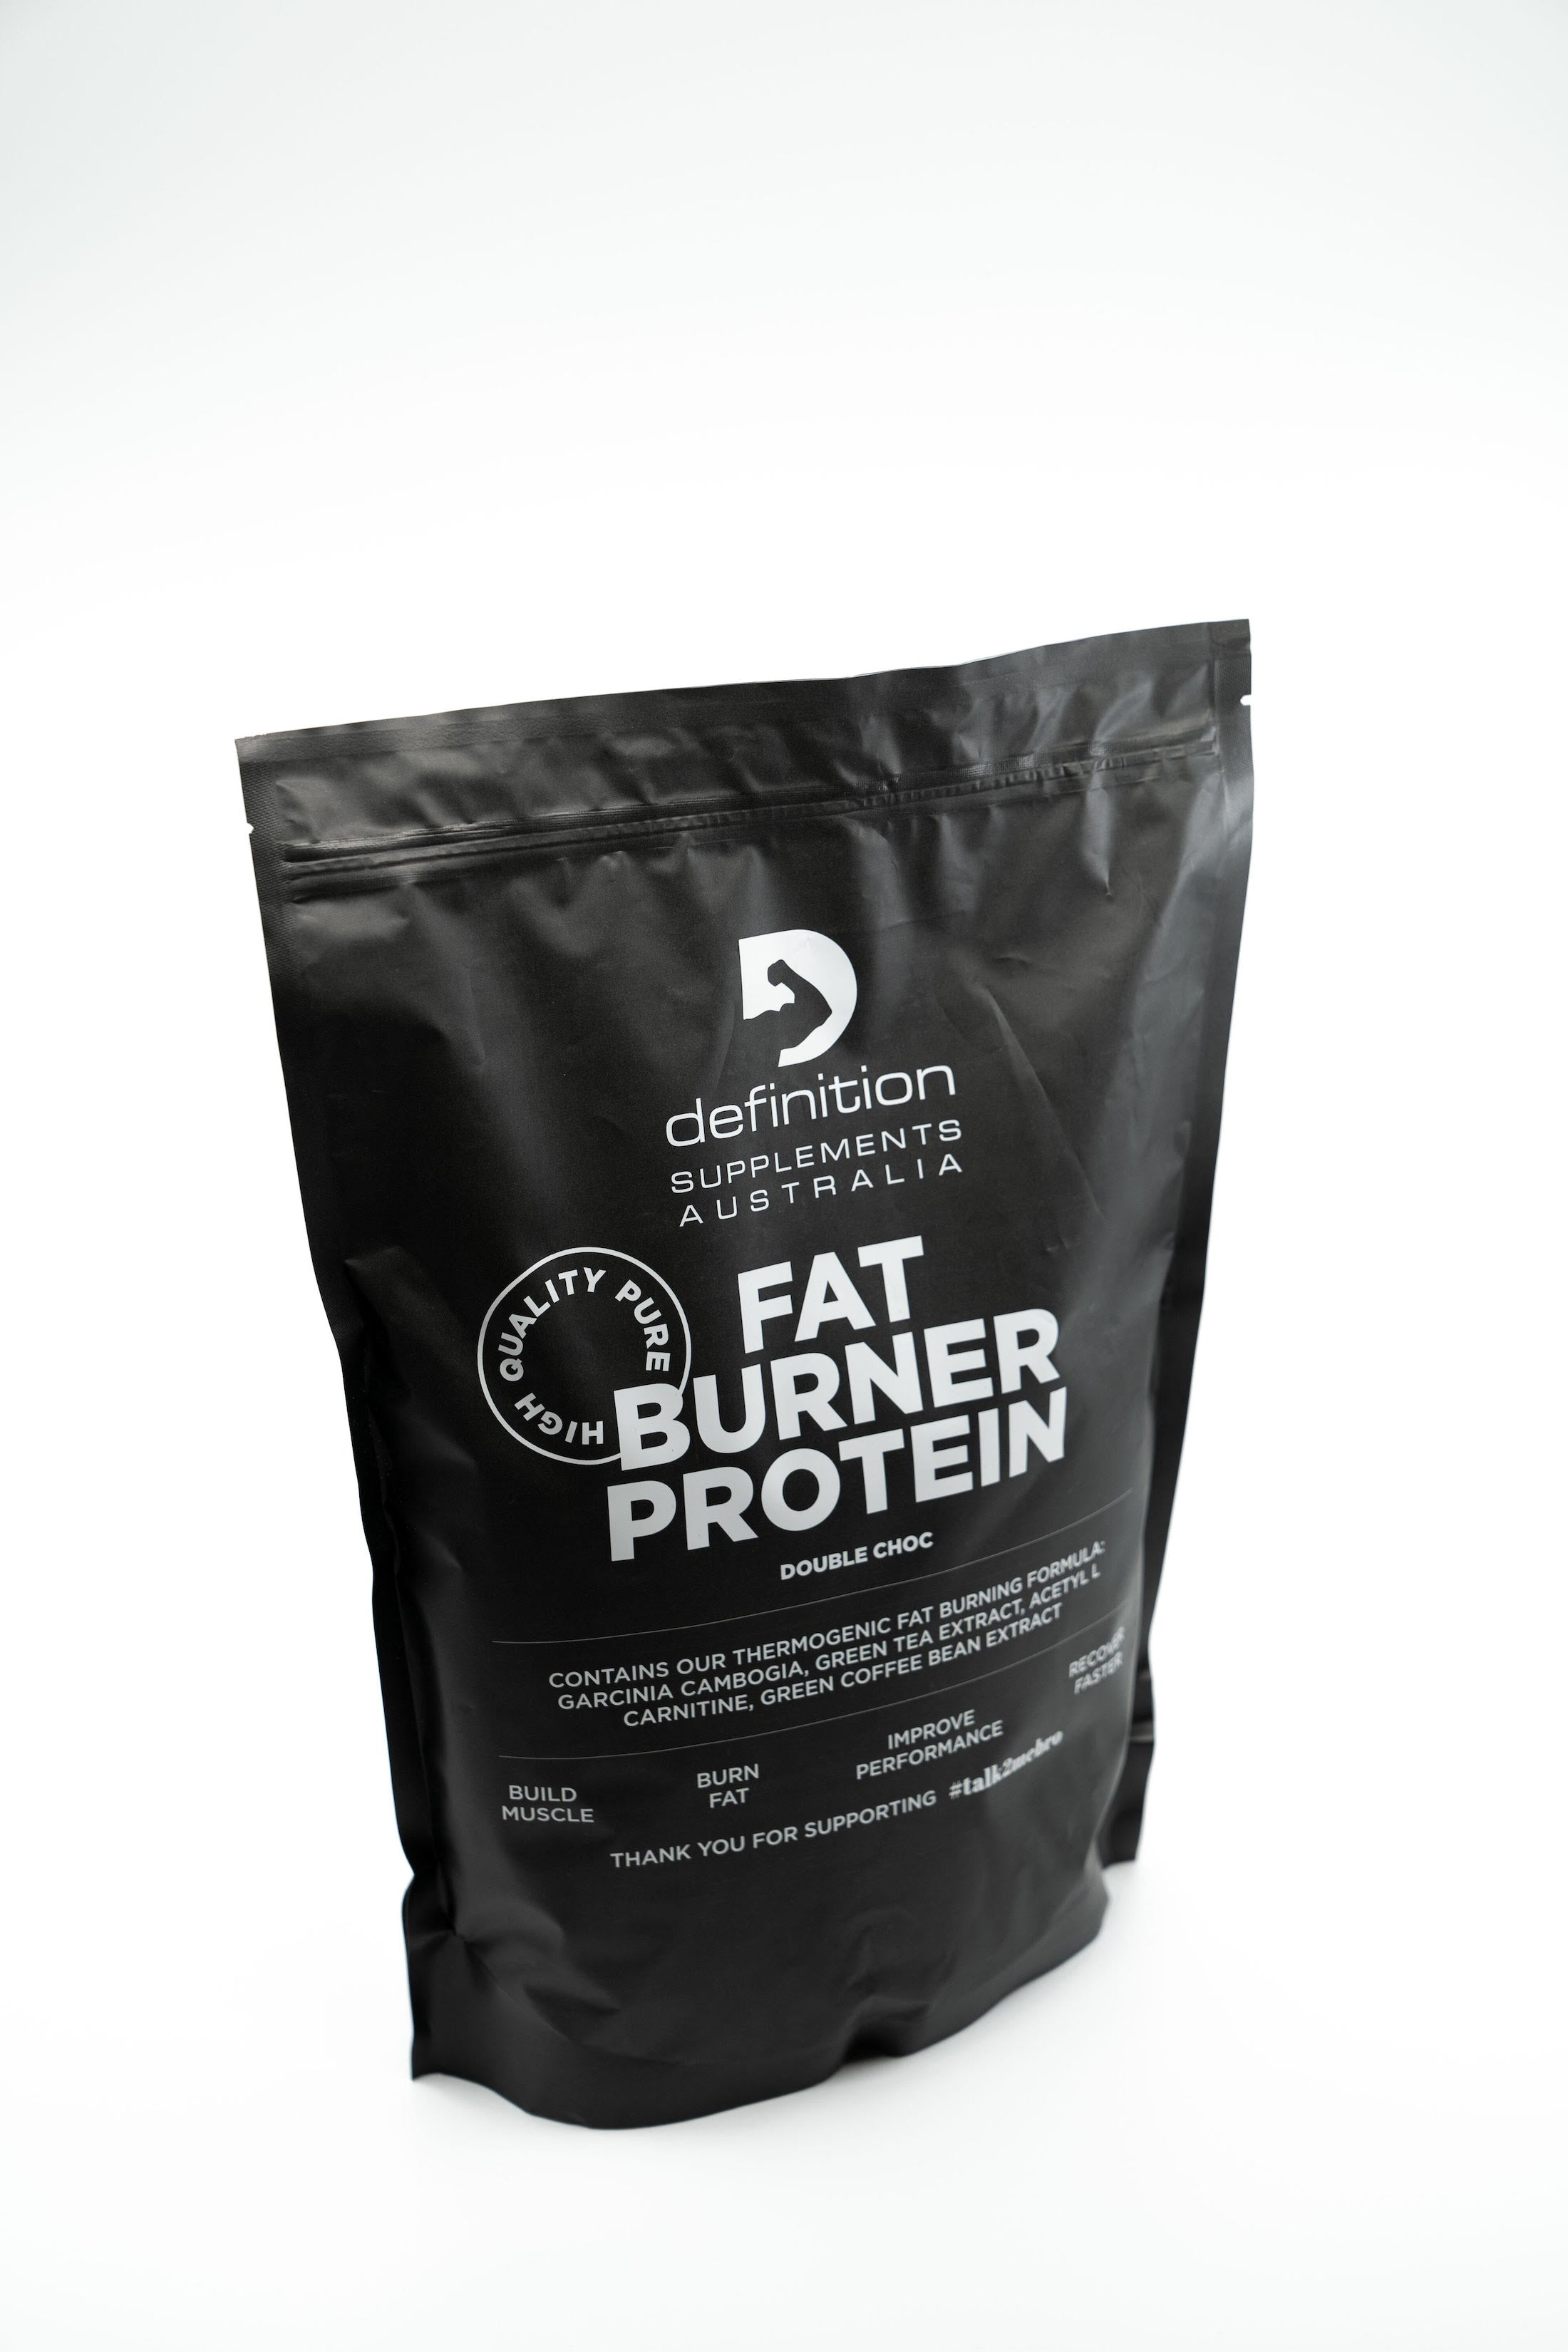 FAT BURNER PROTEIN - DOUBLE CHOC.